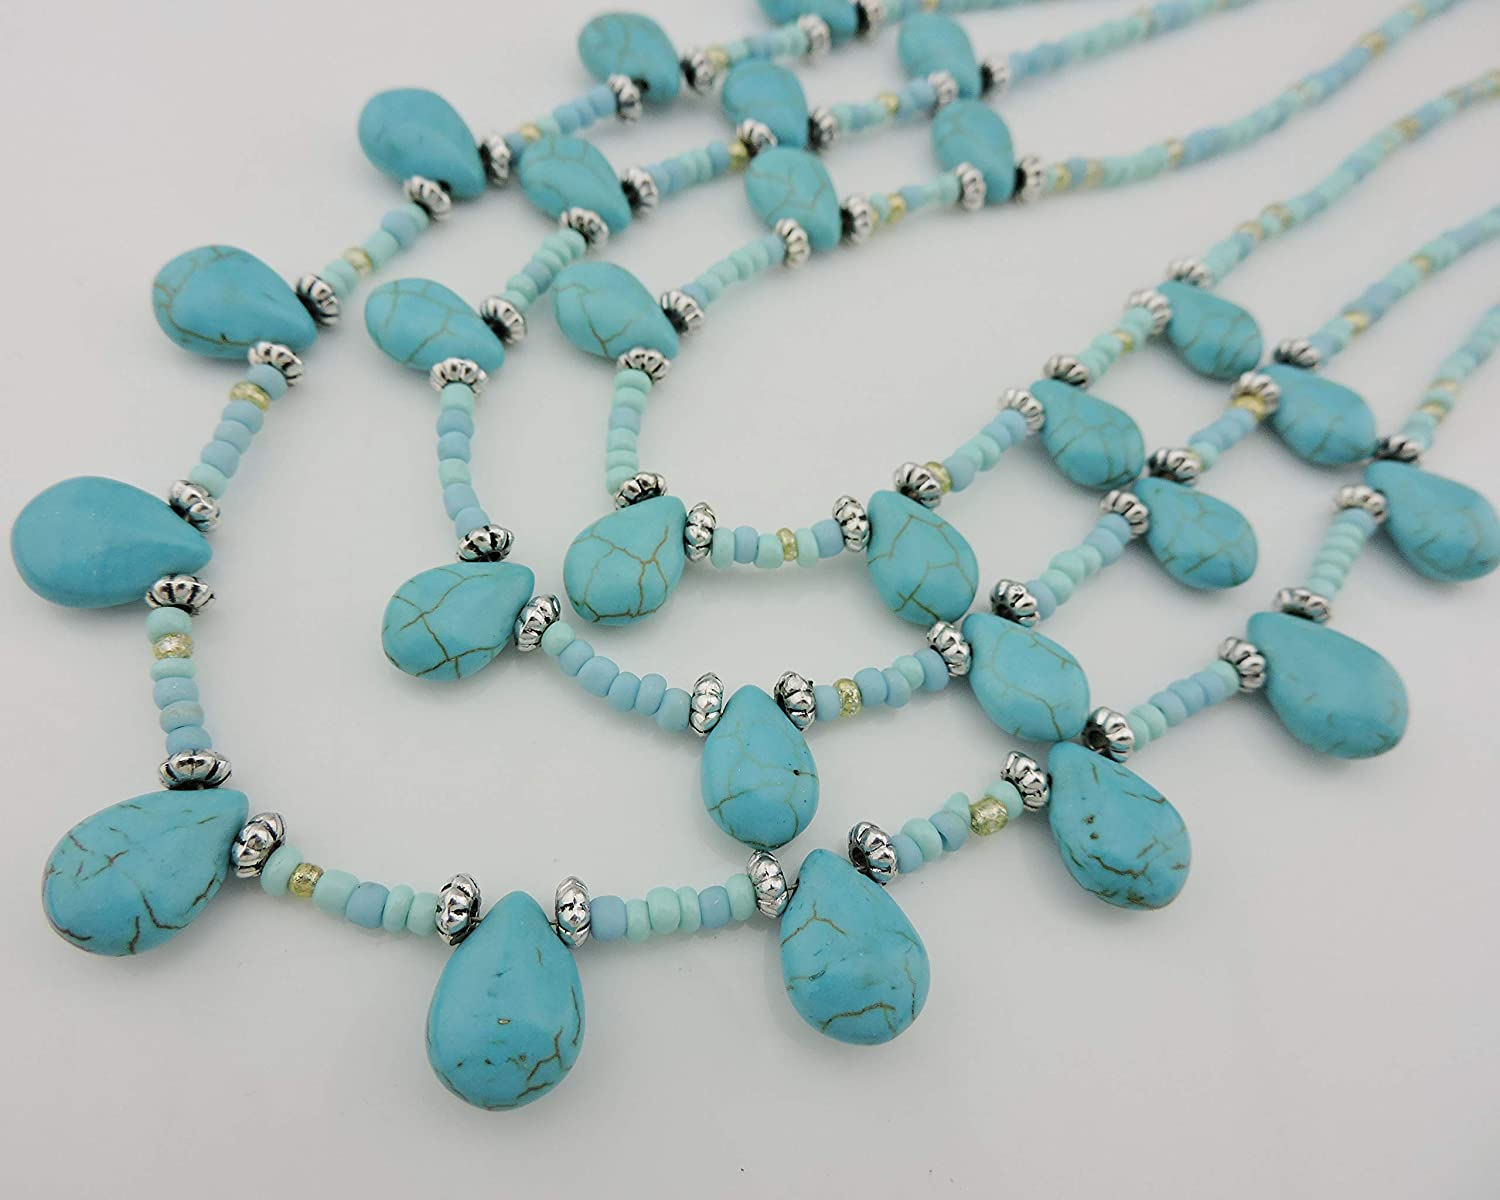 N0043White Coiris Simulated White Turquoise Beads Steel Band Statement Necklace for Women with Earrings